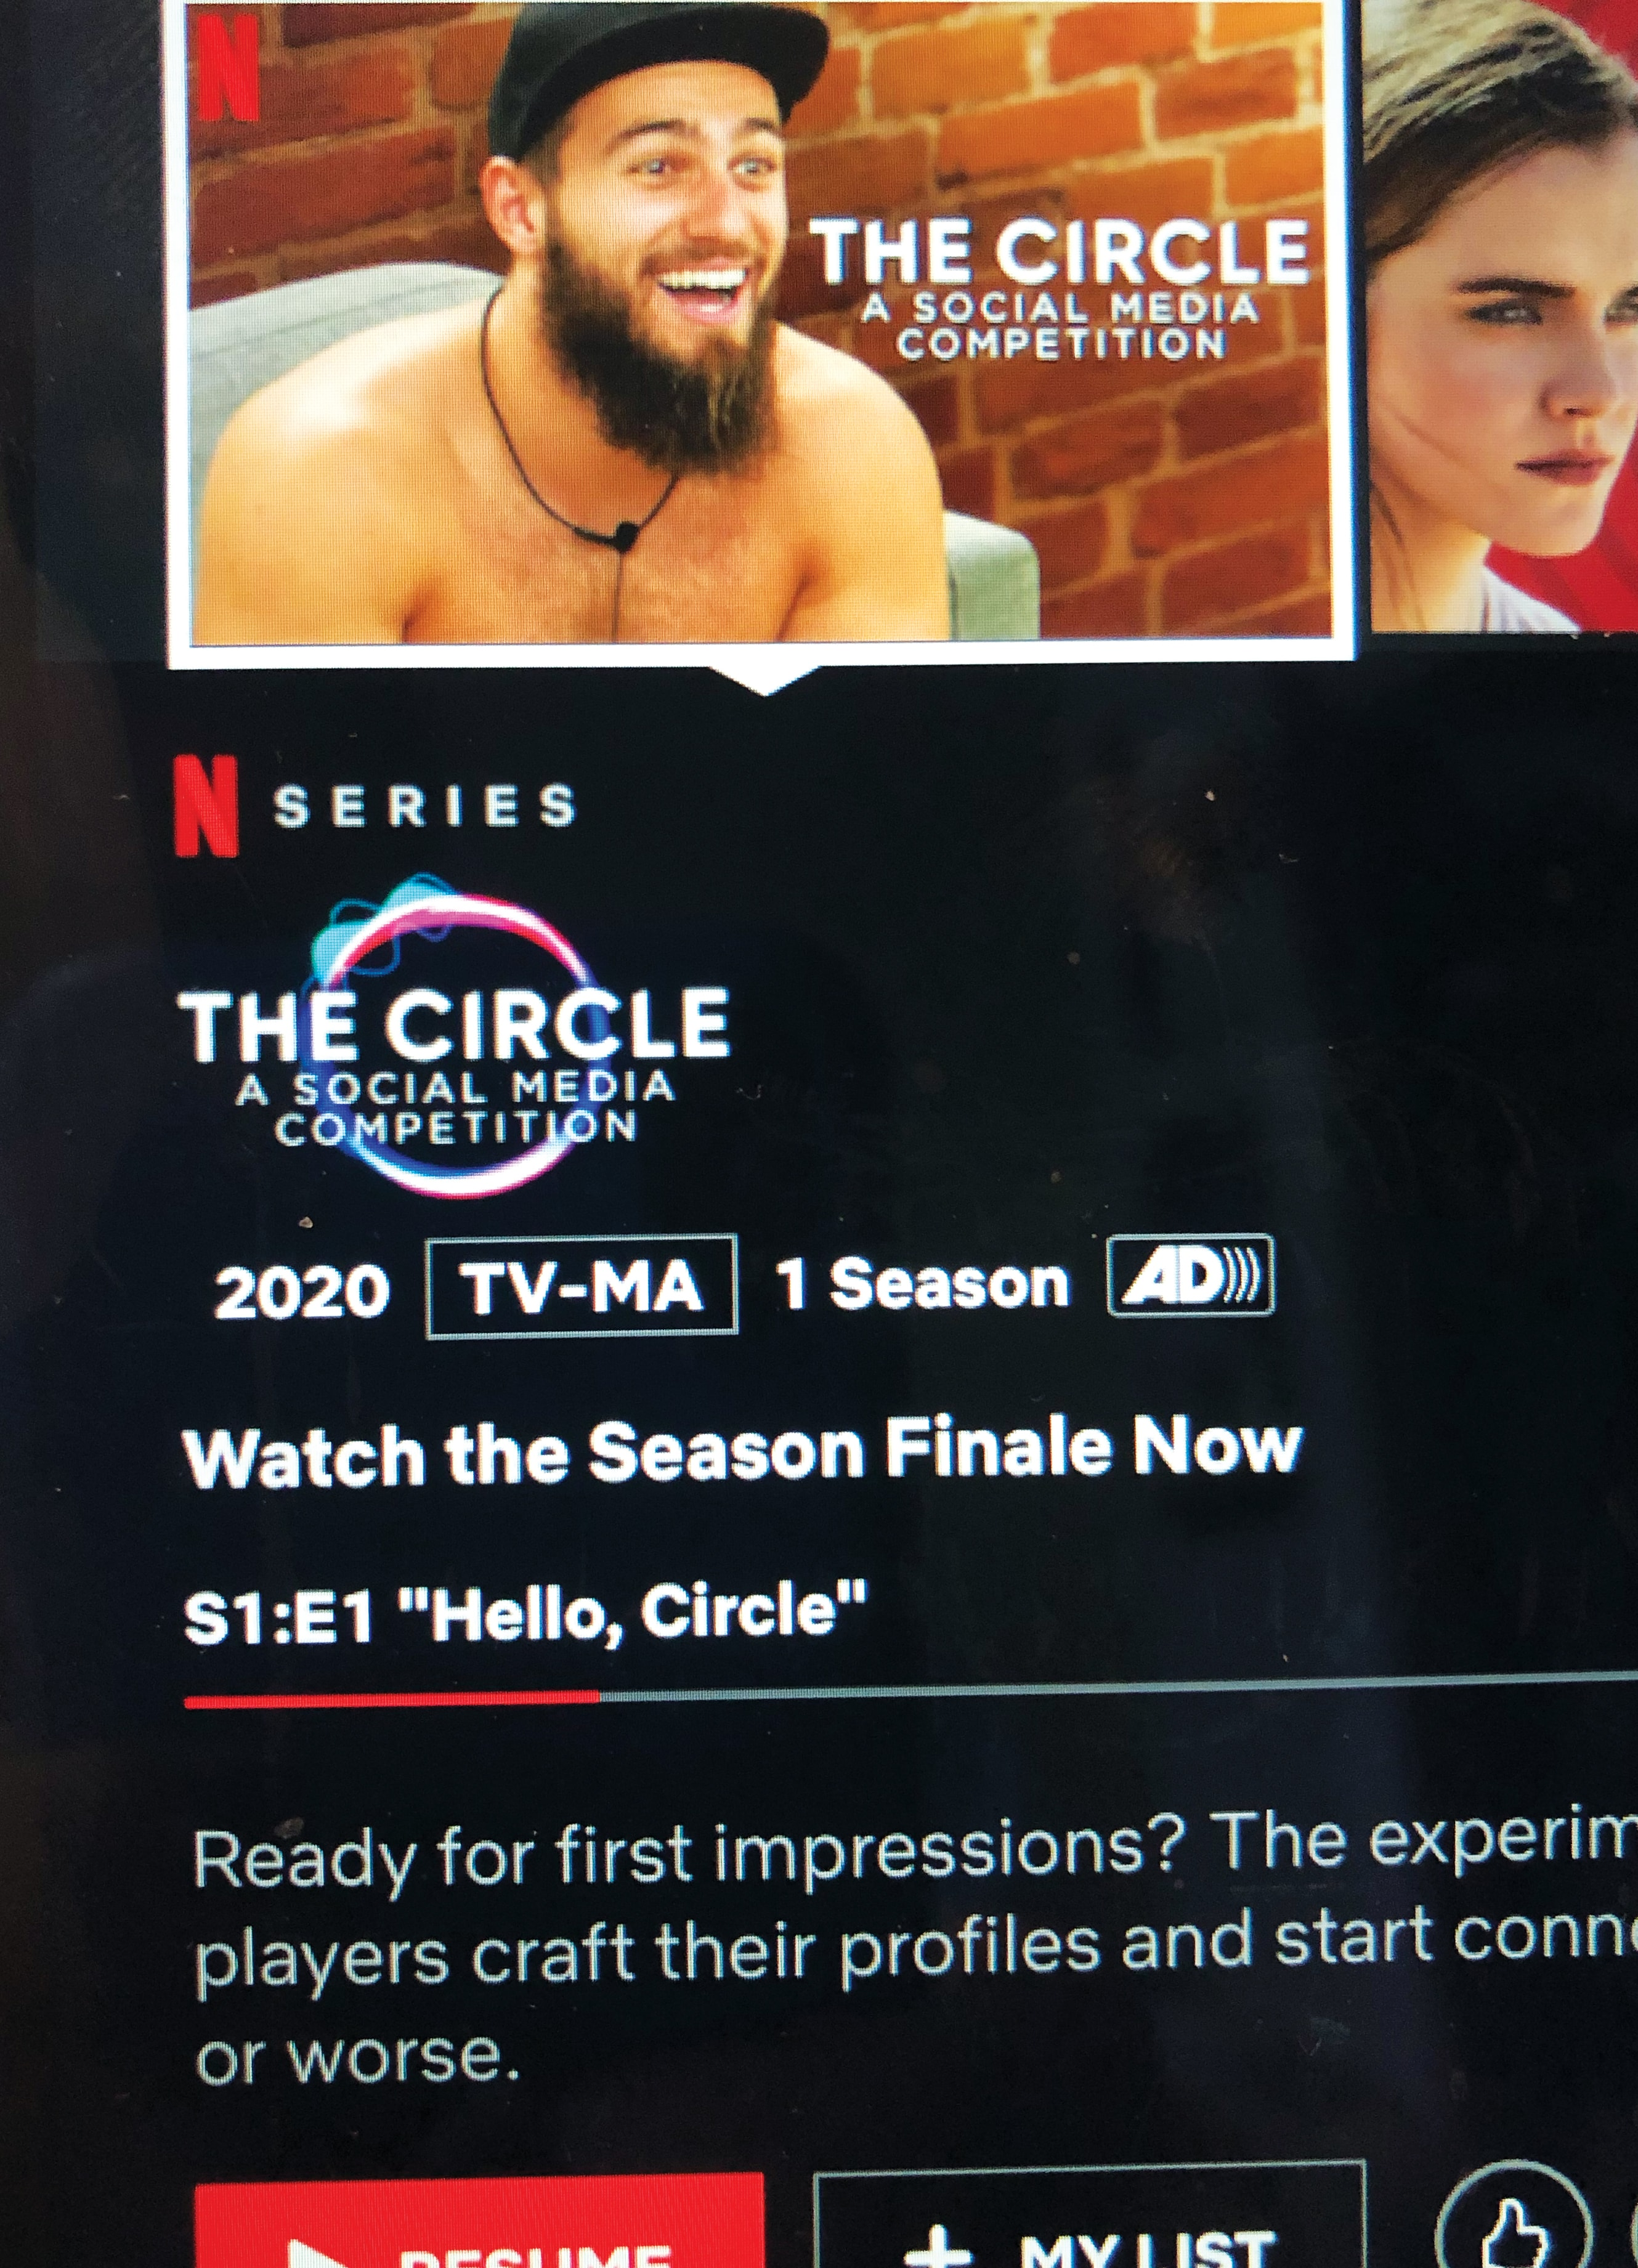 Netflix's The Circle is well-rounded reality television